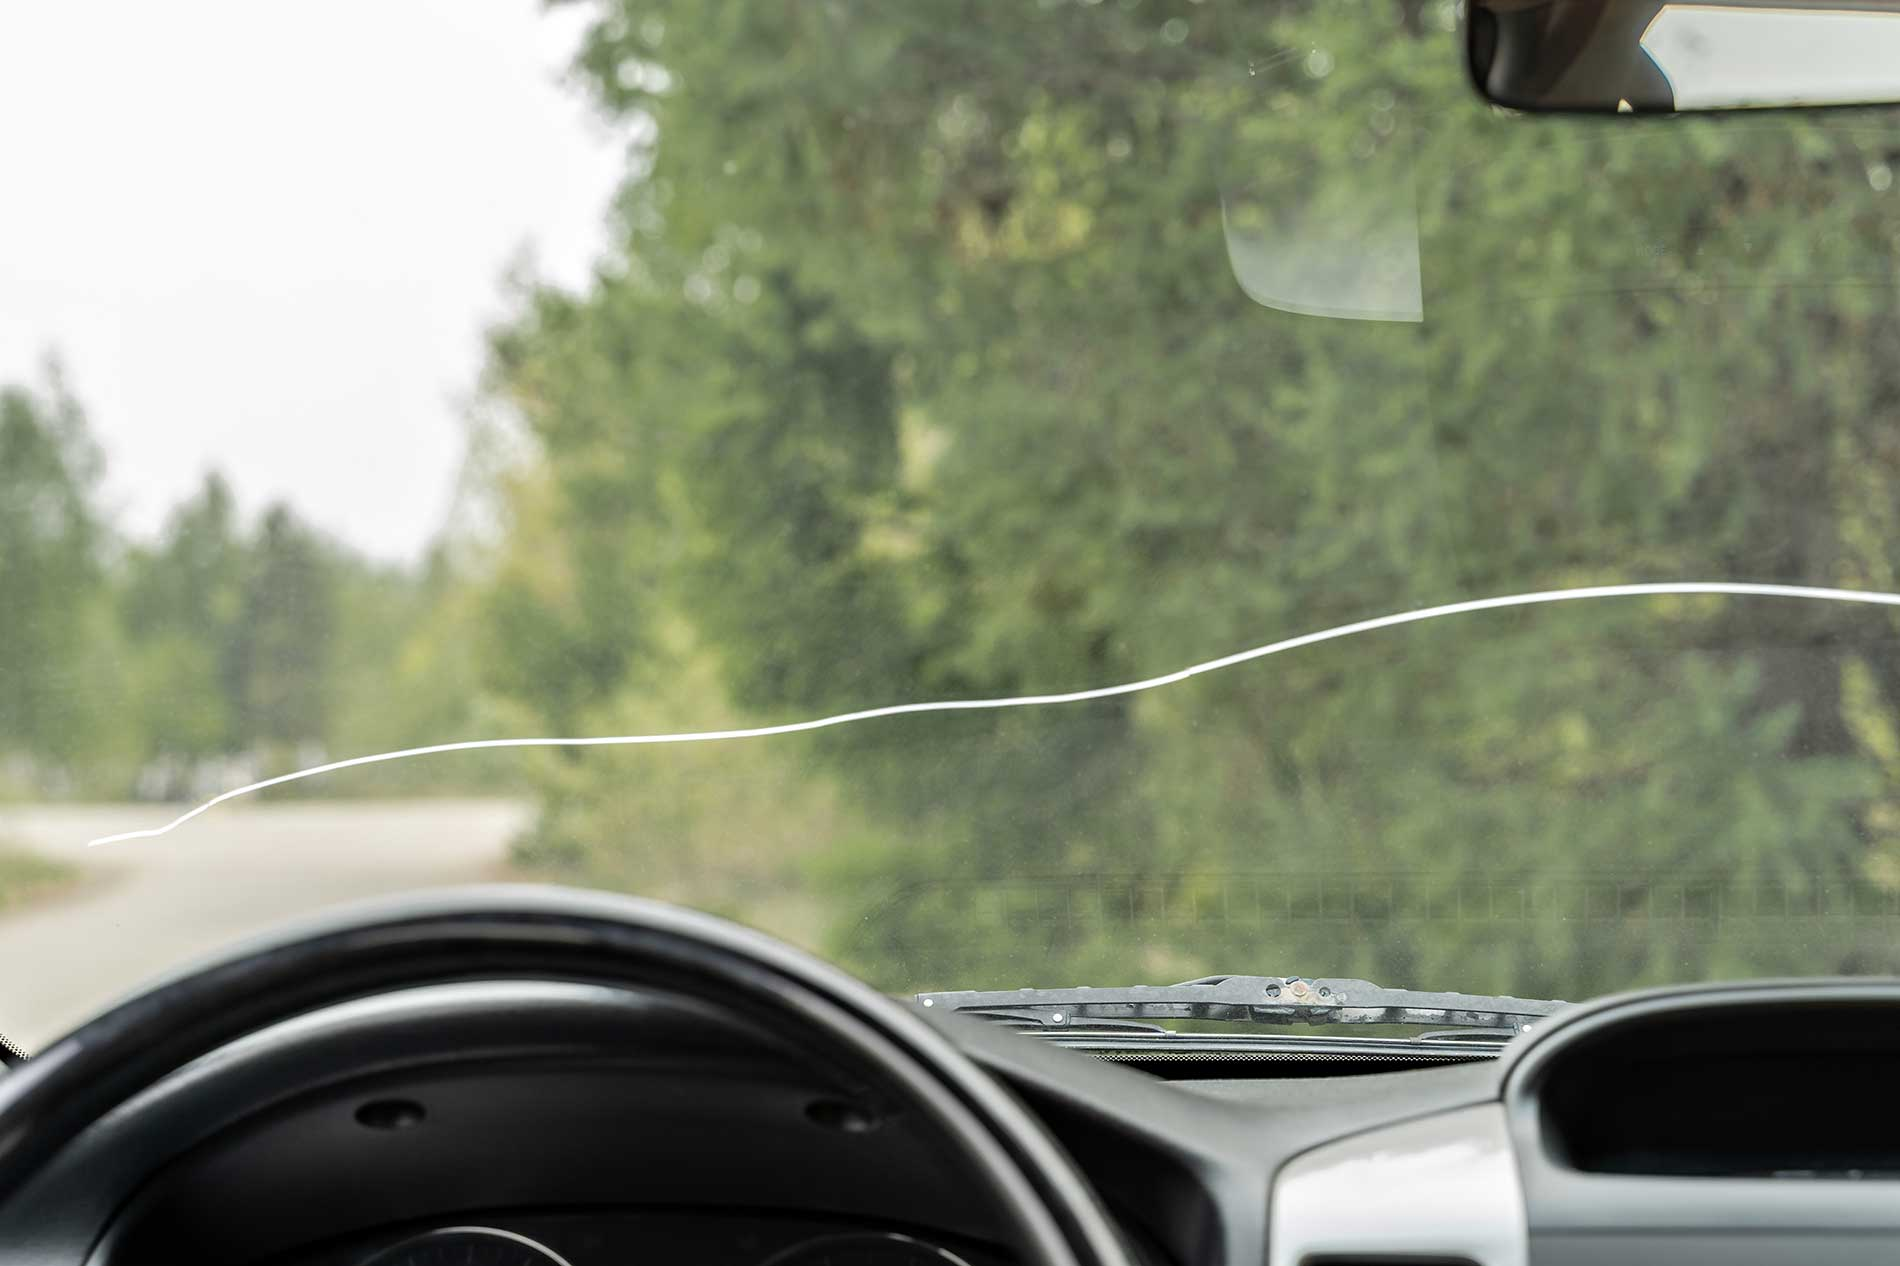 large-crack-in-windshield